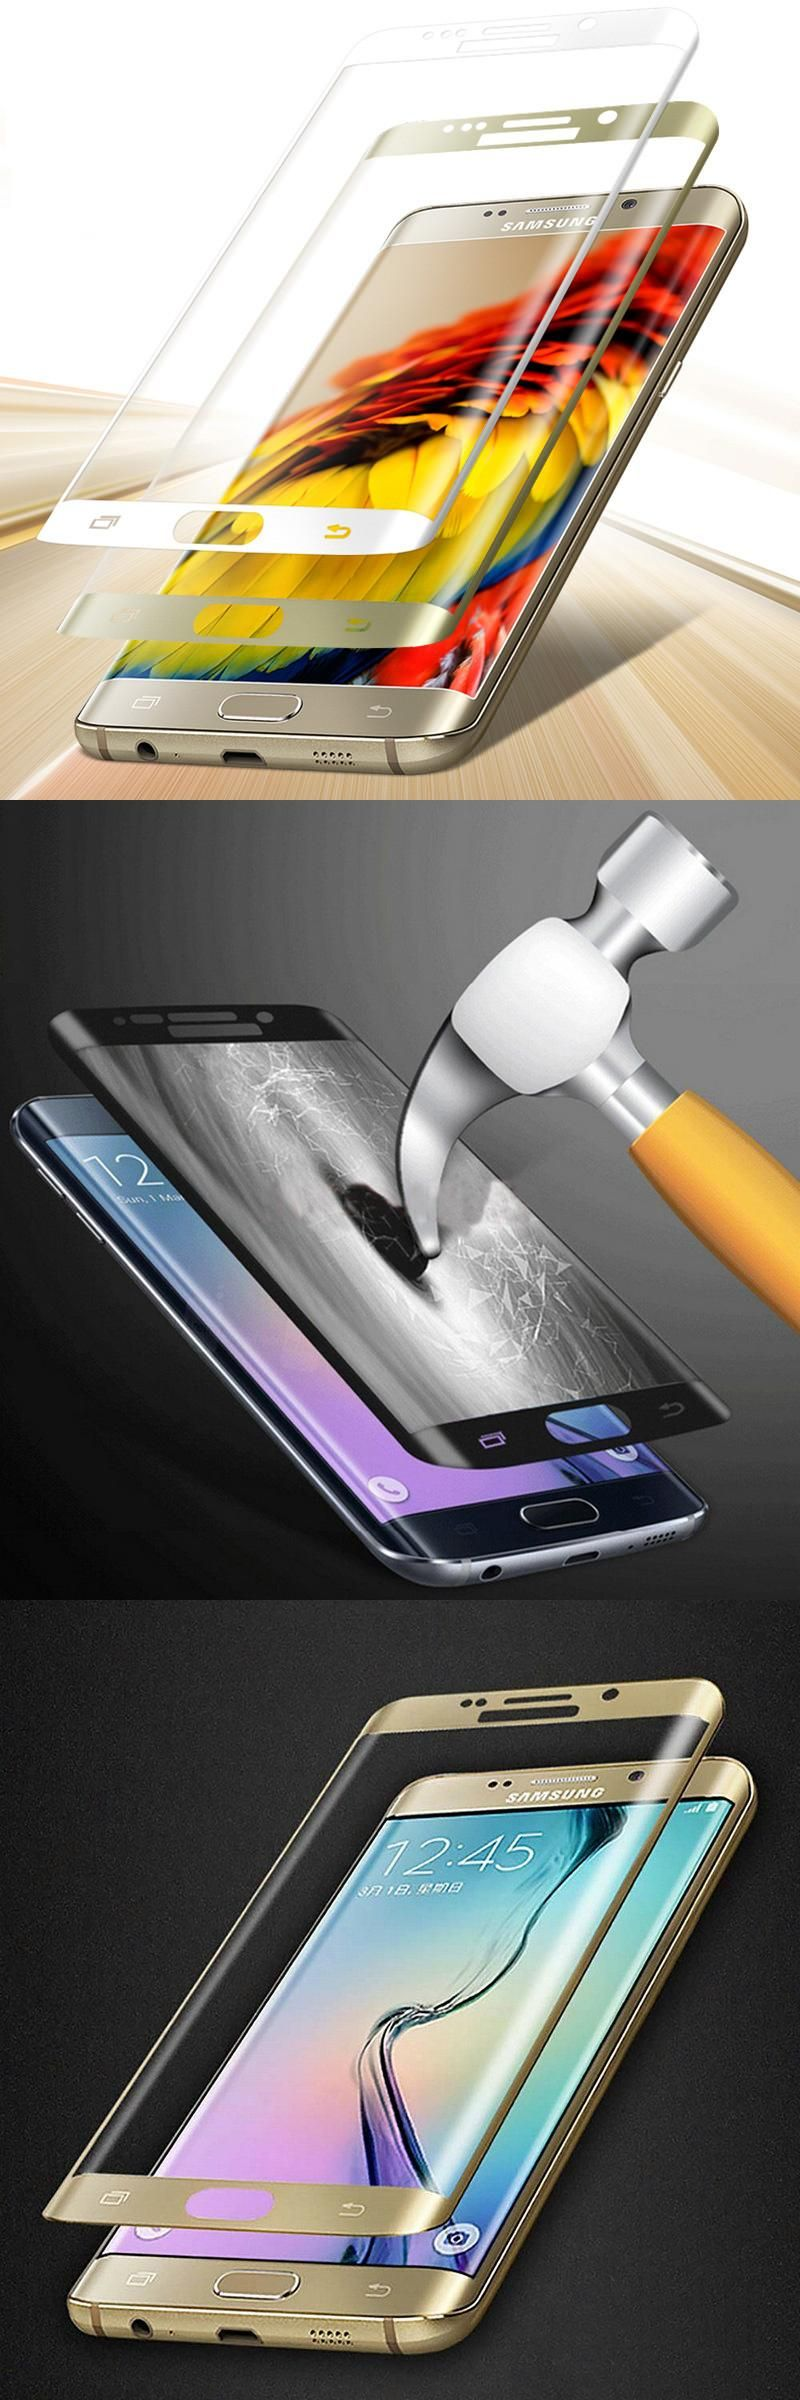 Full Coverage 2 5D 9H Screen Protector Tempered Glass For Galaxy S6 S6 Edge S7 S7 edge S6 Edge Plus Cover Case Protective